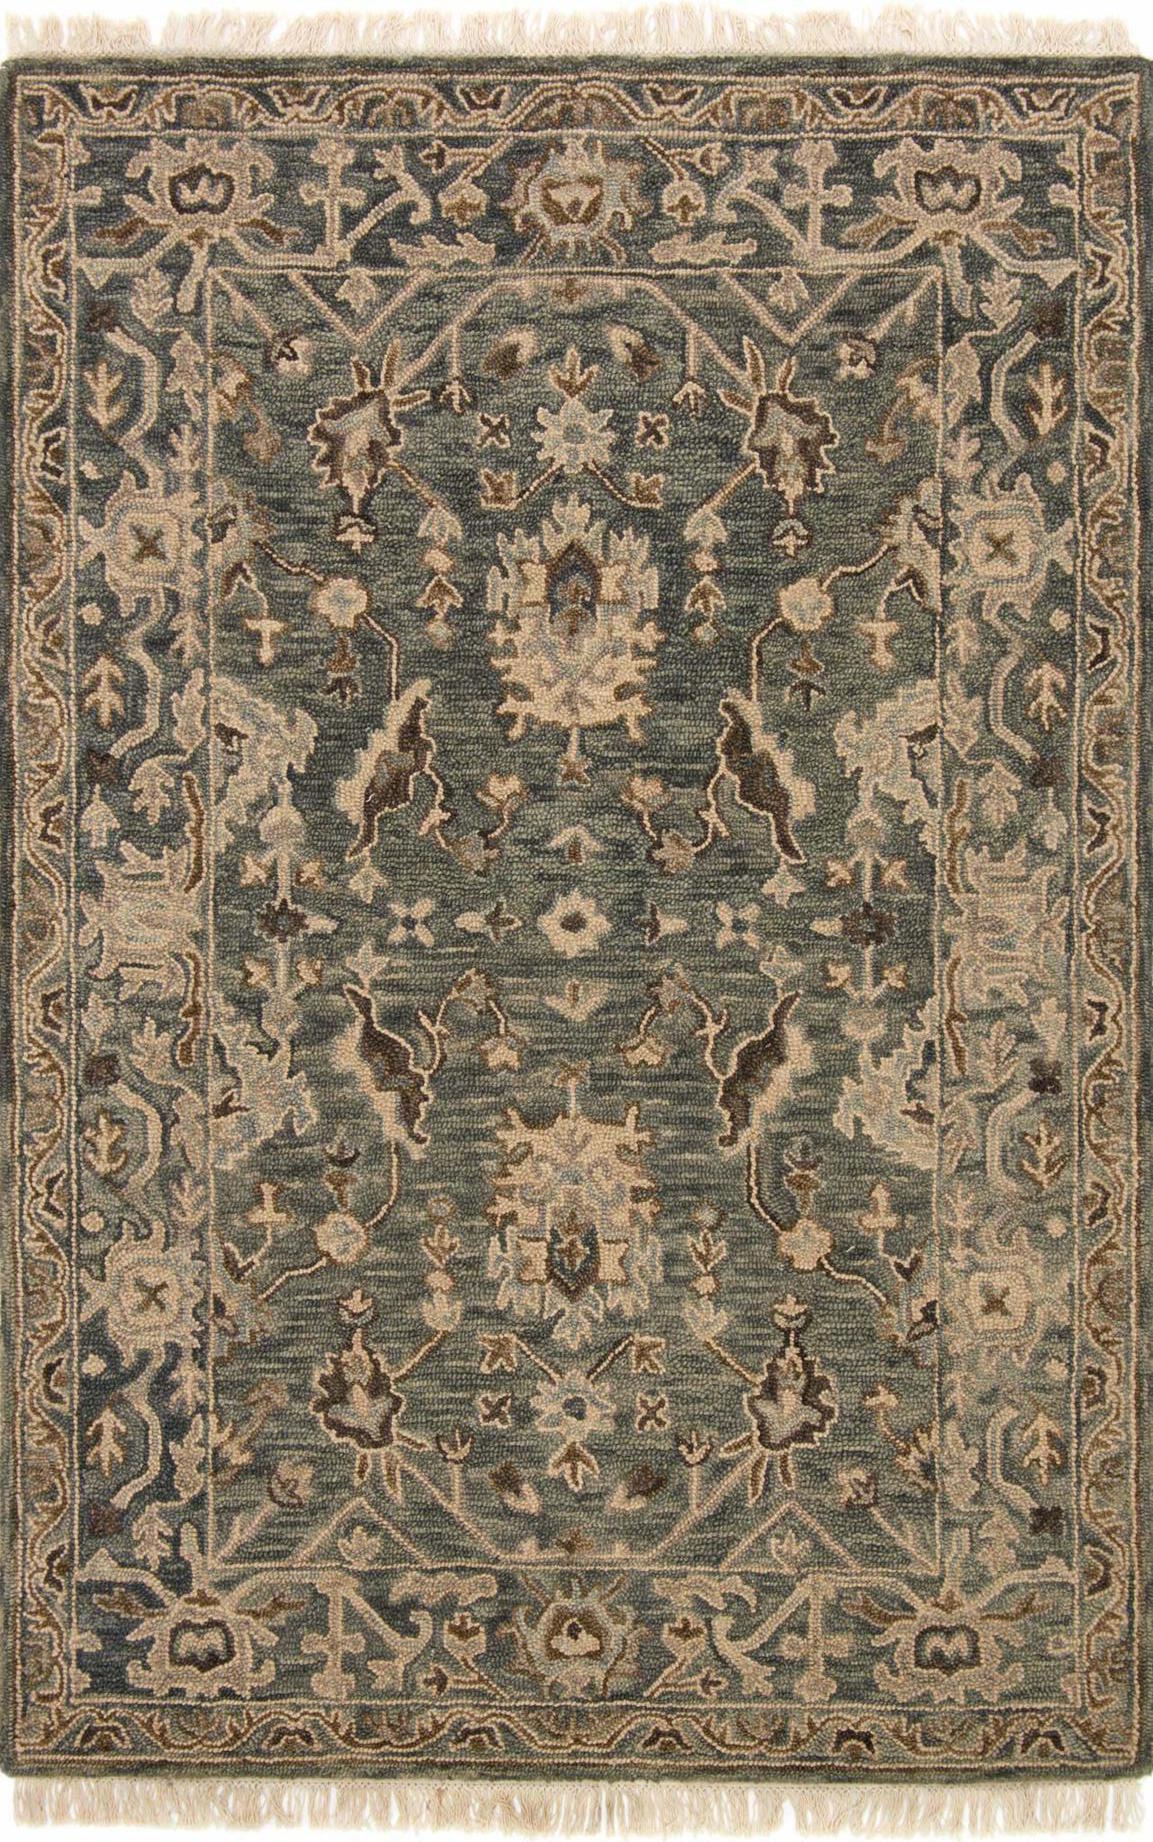 creative persimmon awesome area rug magnolia scheme for home jozie rugs of ideas day lighting orange